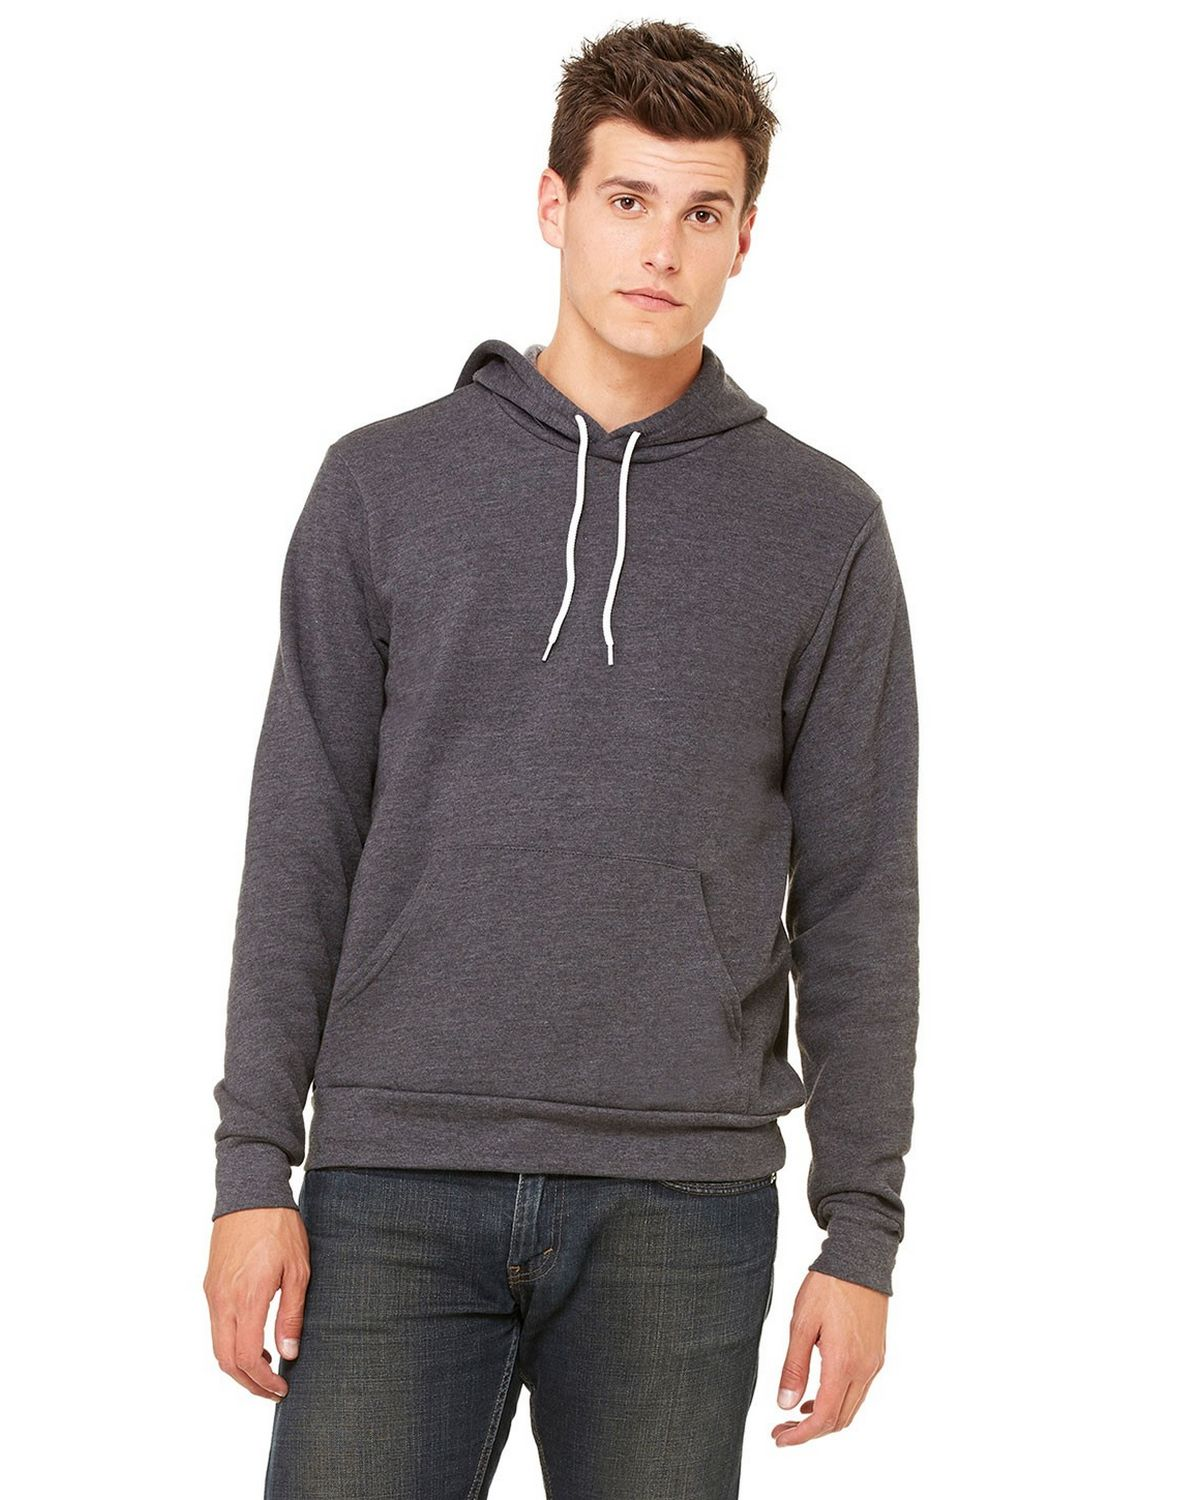 Bella + Canvas 3719 Unisex Poly Cotton Fleece Pullover Hoodie - Dark Grey Heather - L 3719